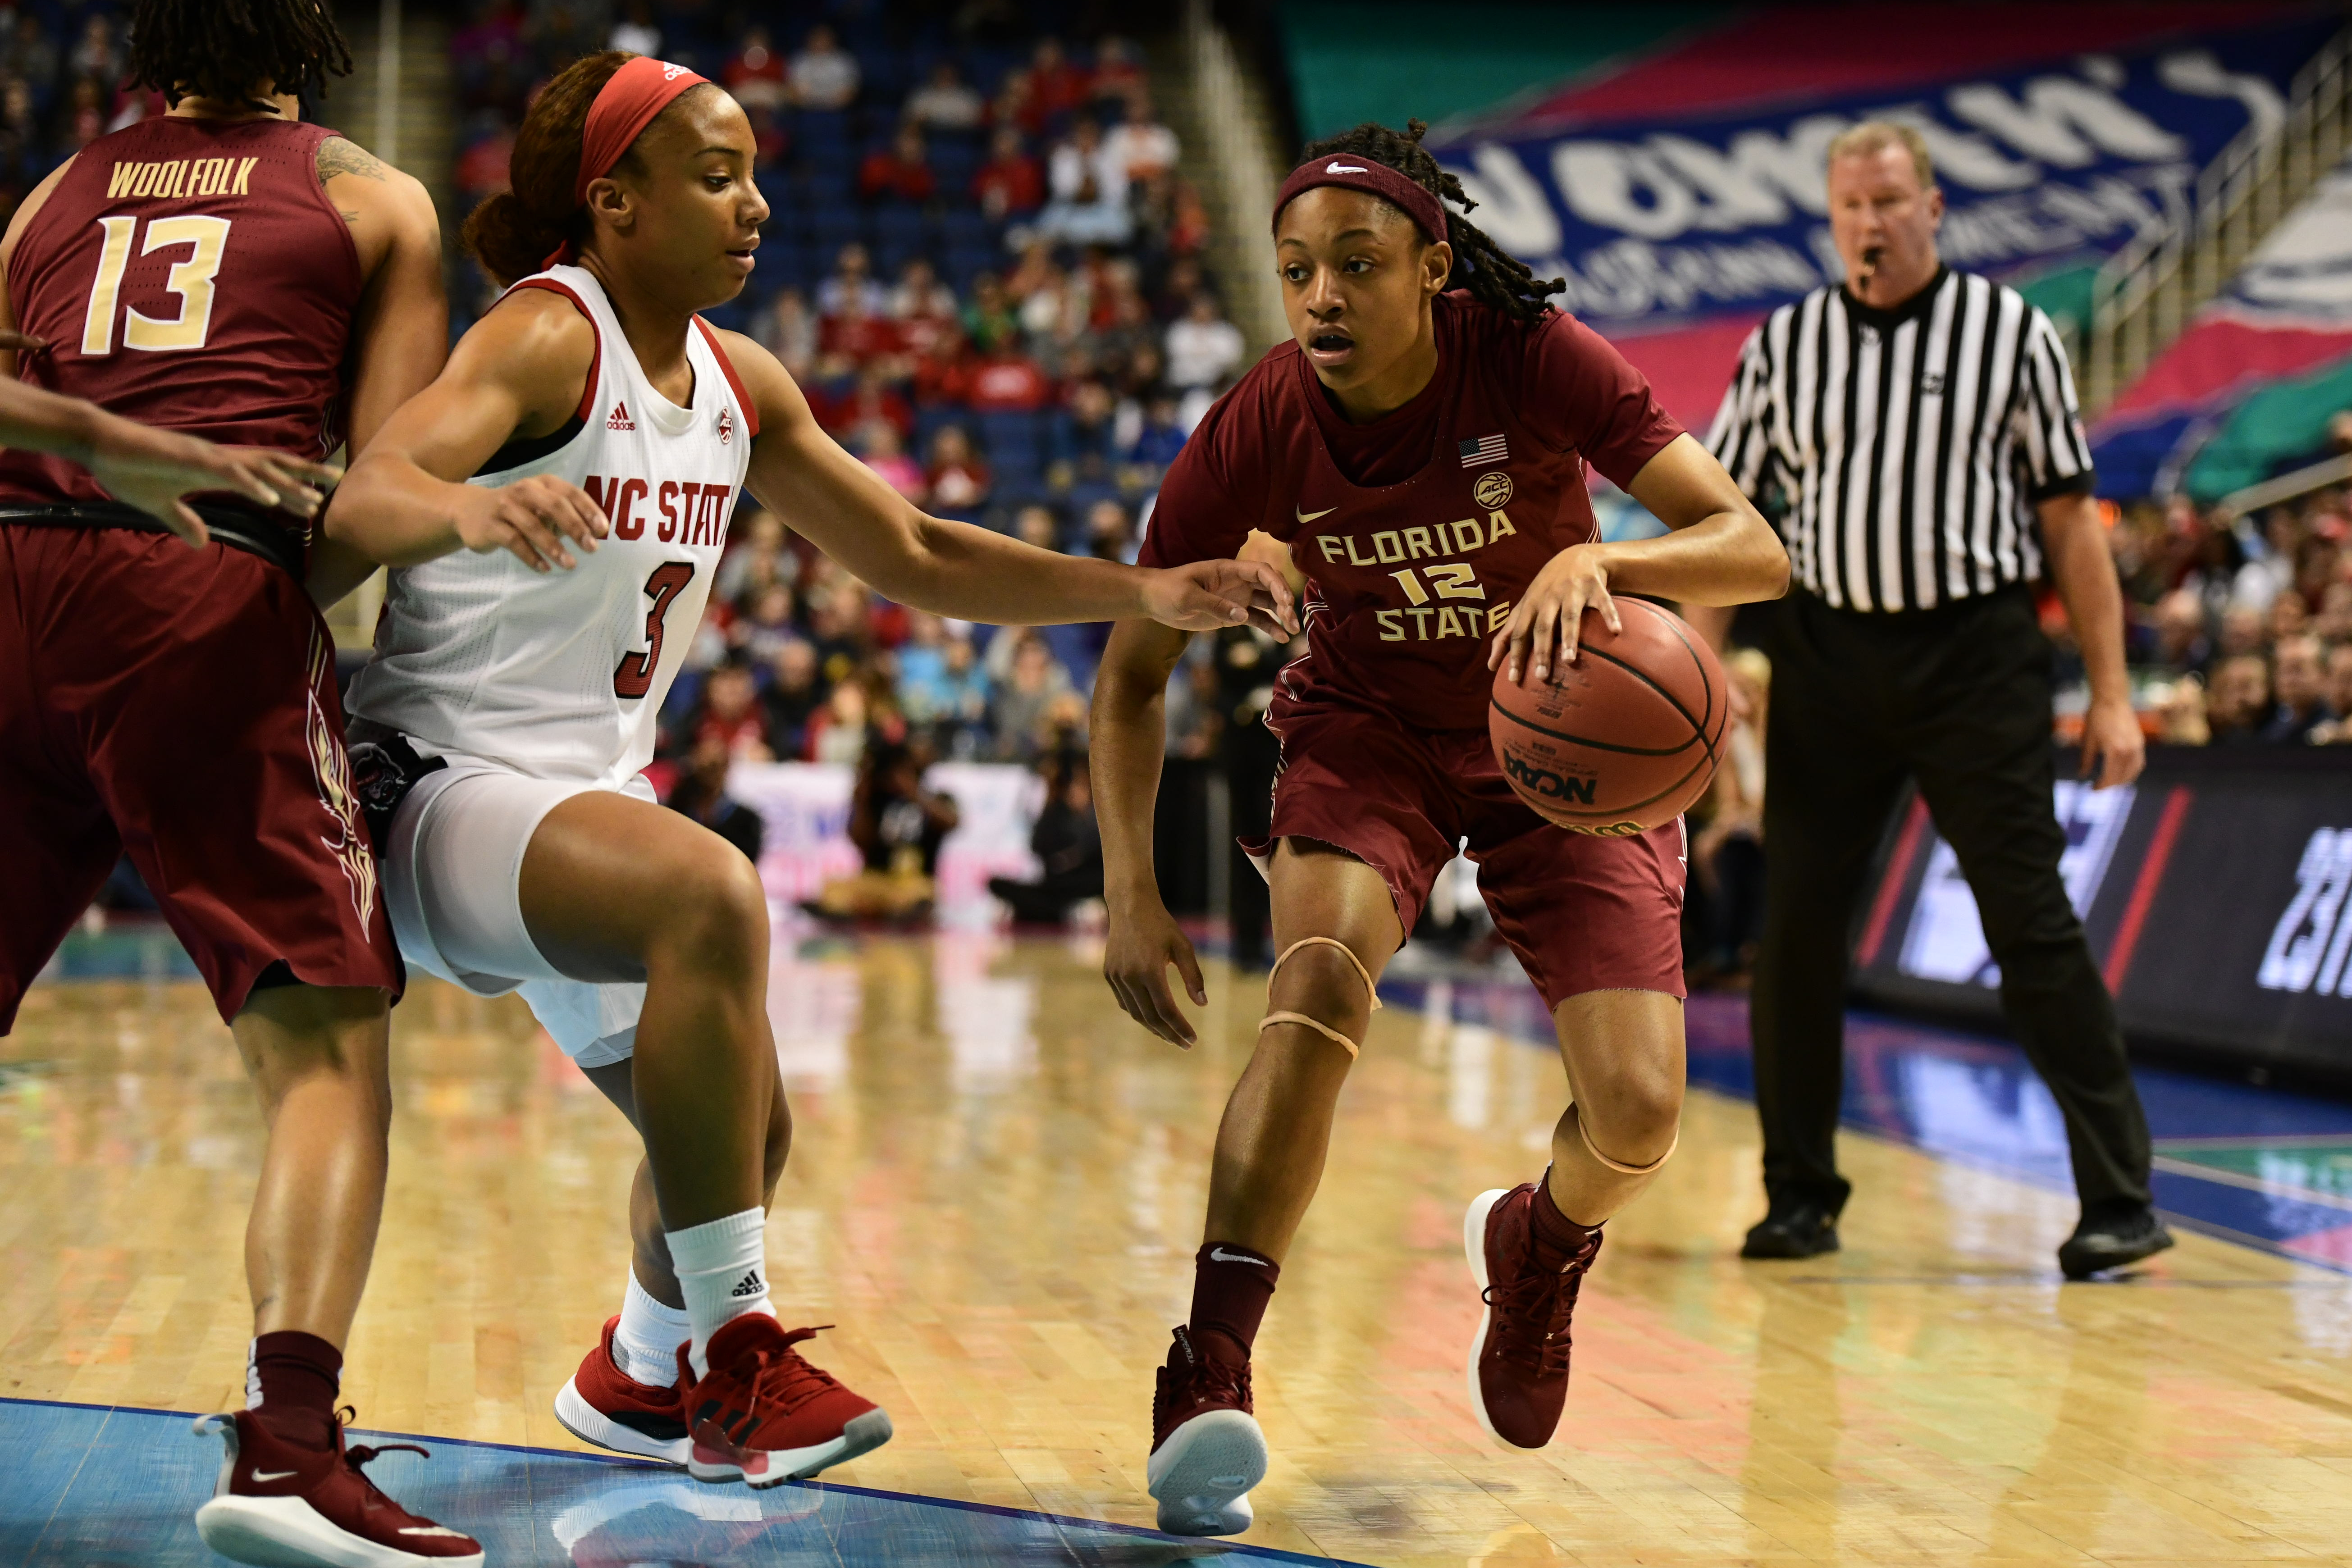 COLLEGE BASKETBALL: MAR 08 ACC Women's Tournament - NC State v Florida State